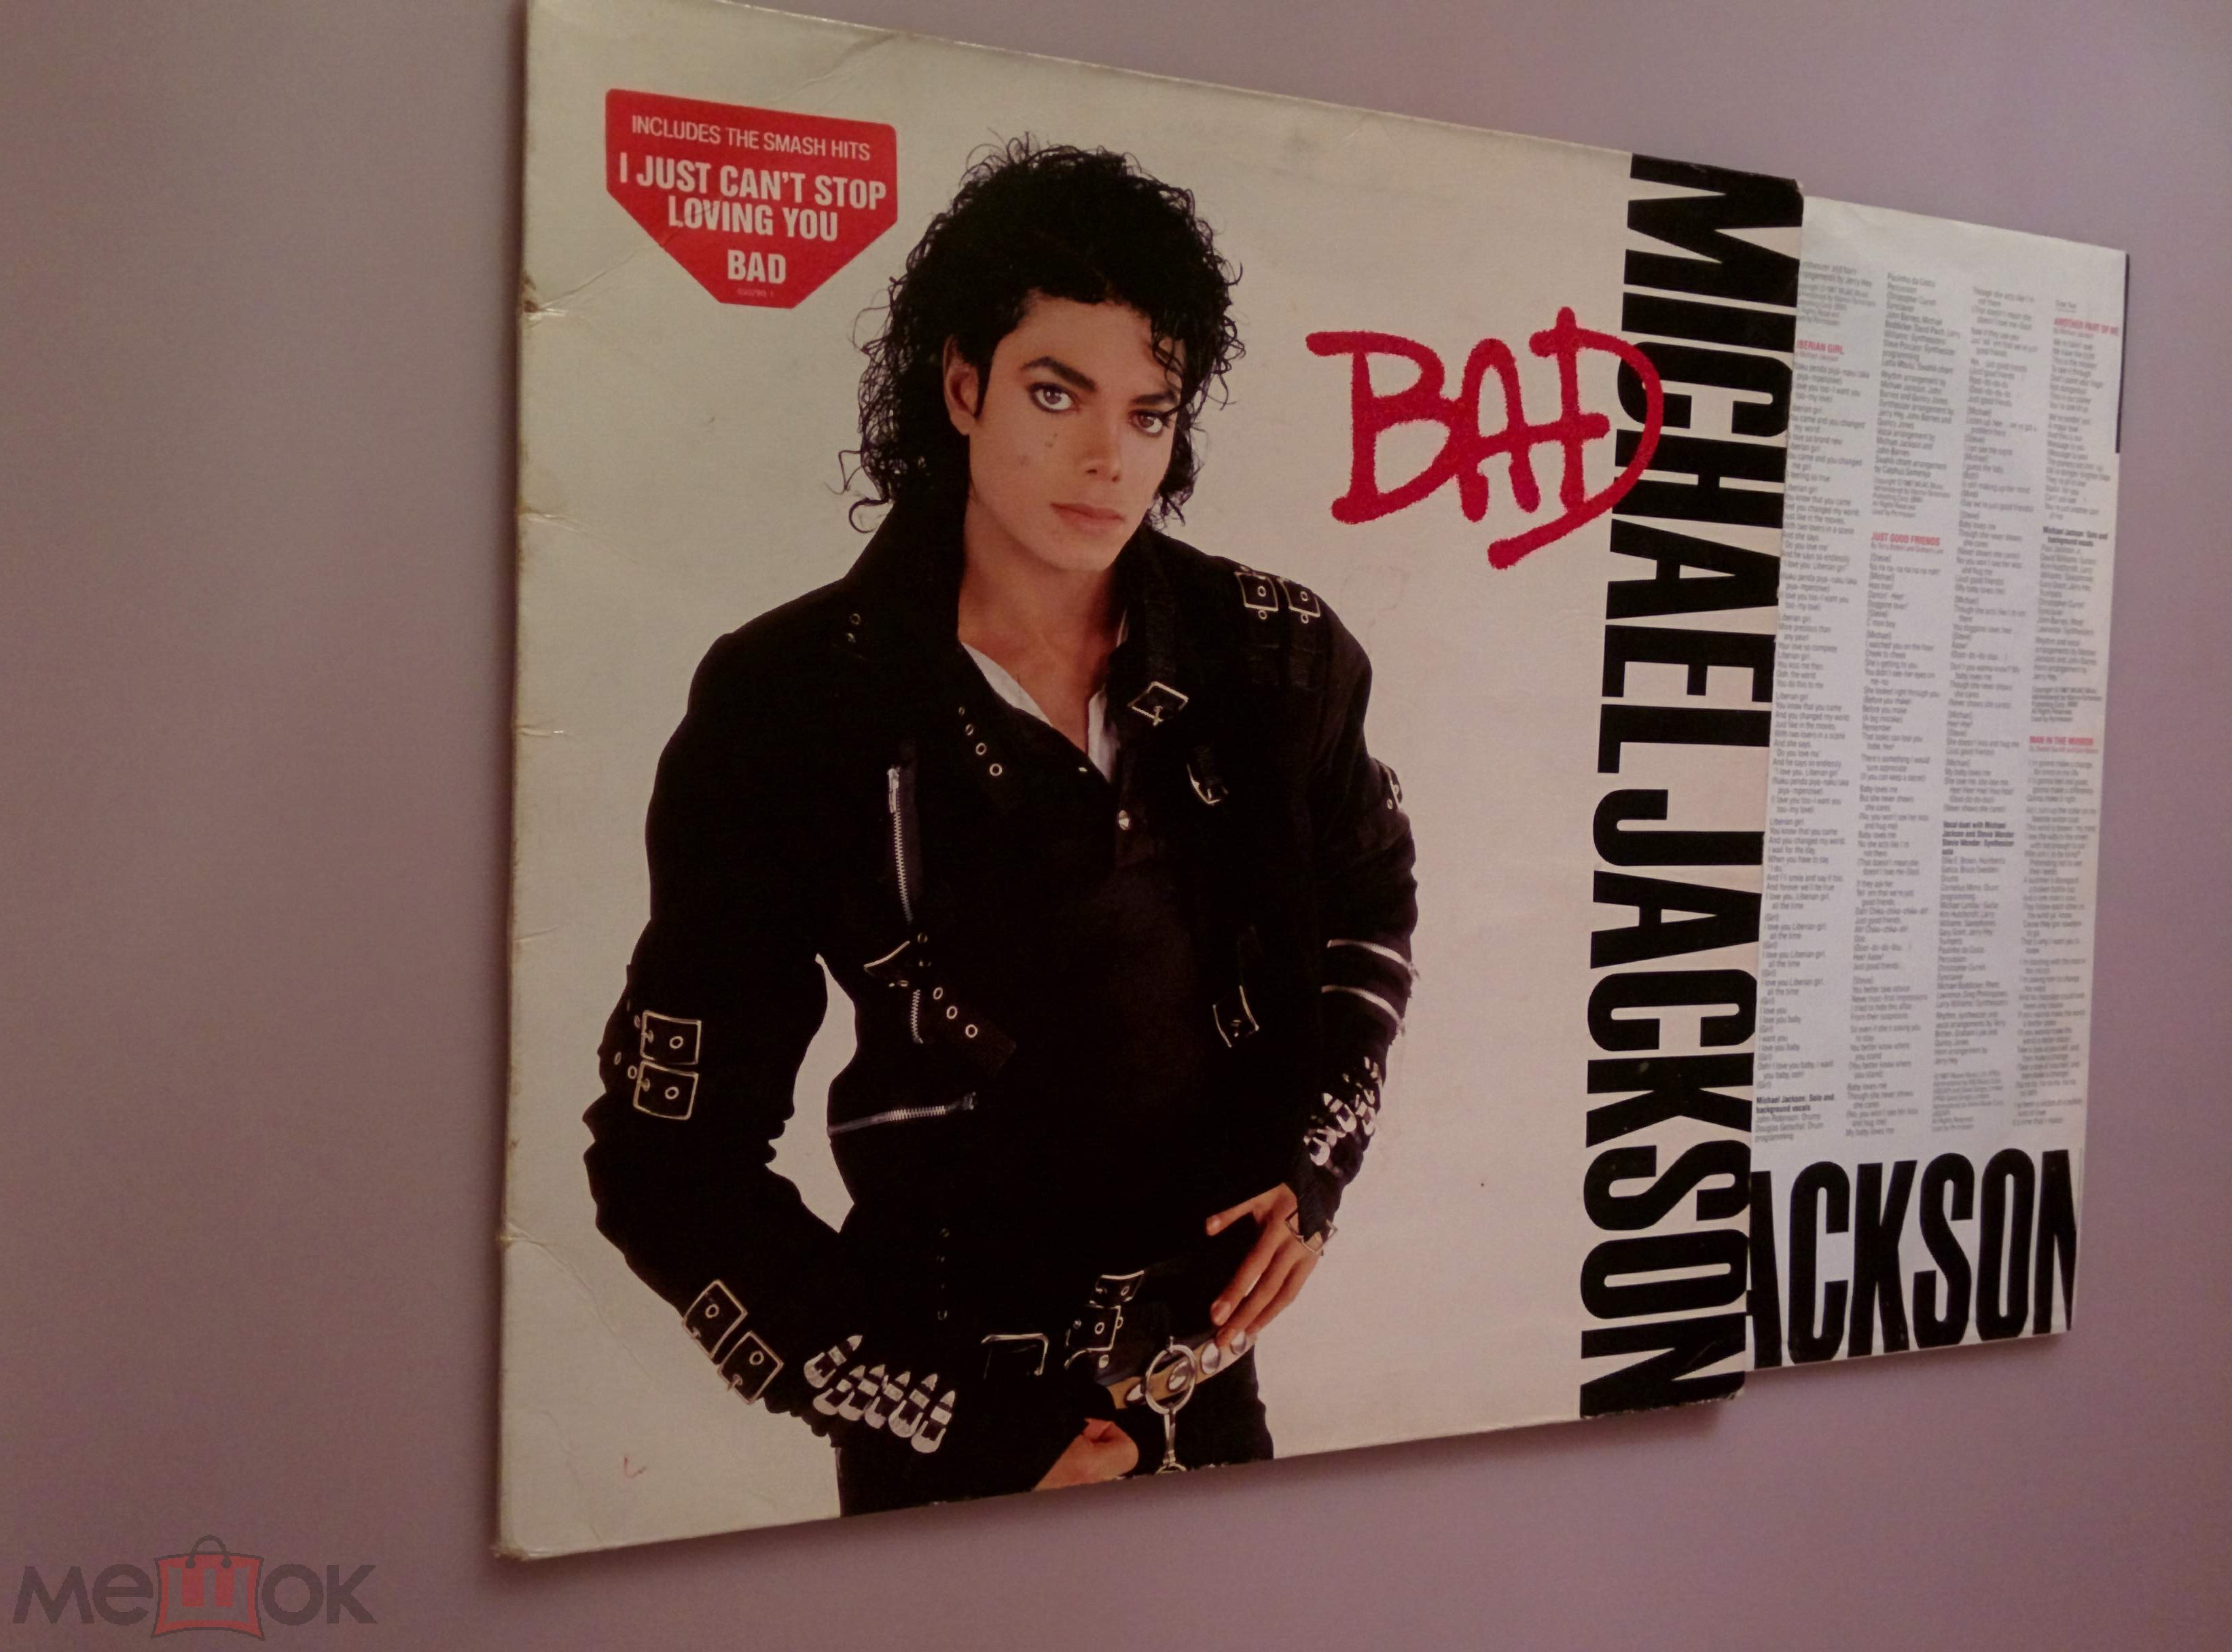 michael jackson thriller album download free zip